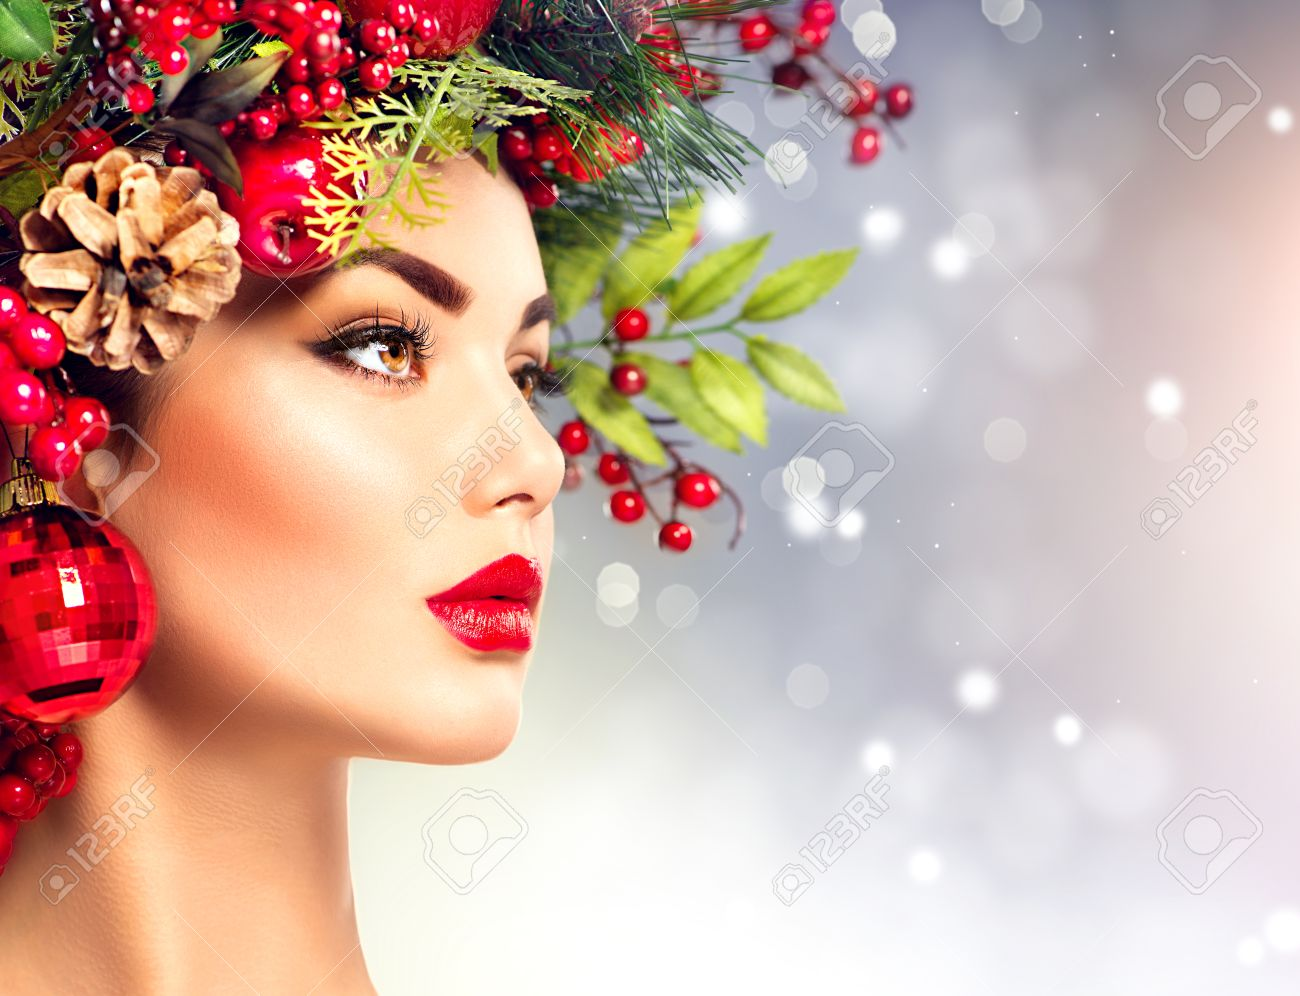 Christmas Fashion Model Woman Holiday Hairstyle And Makeup Stock Photo Picture And Royalty Free Image Image 48483472